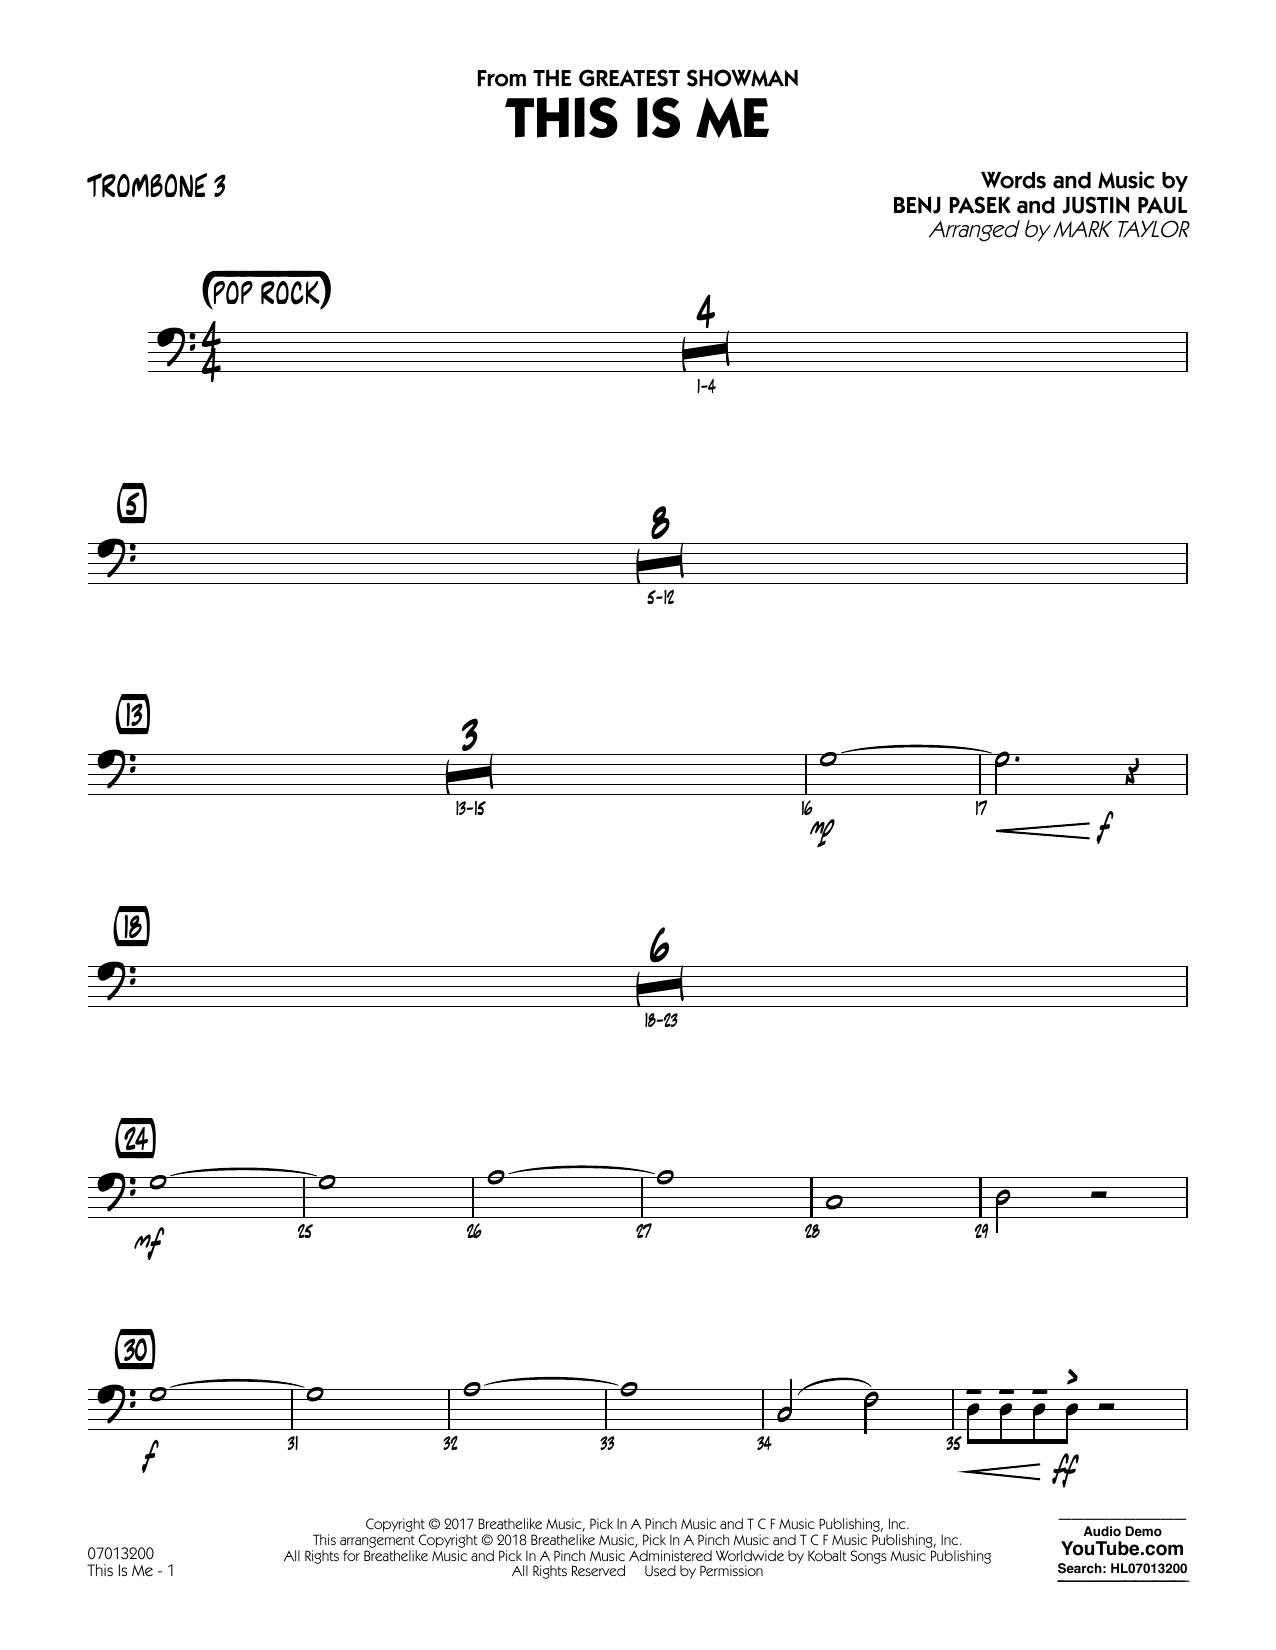 This Is Me (from The Greatest Showman) (arr. Mark Taylor) - Trombone 3 (Jazz Ensemble)